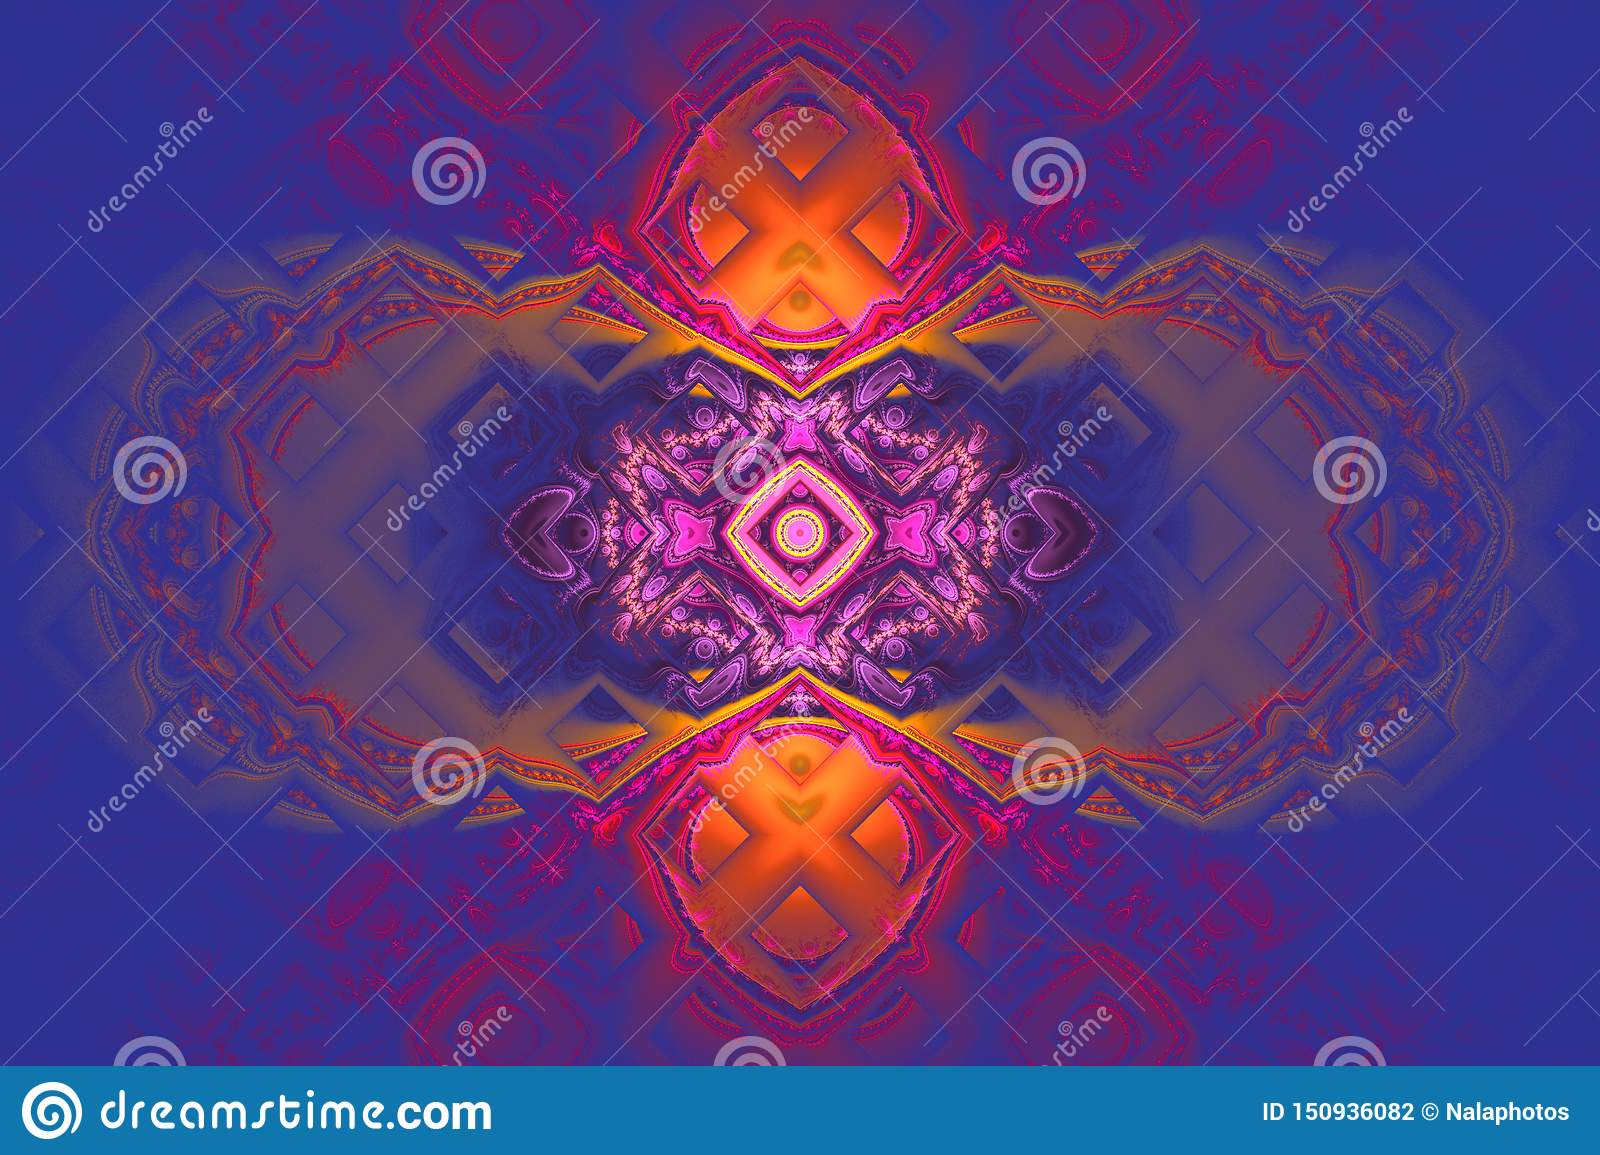 Hypnosis background music download